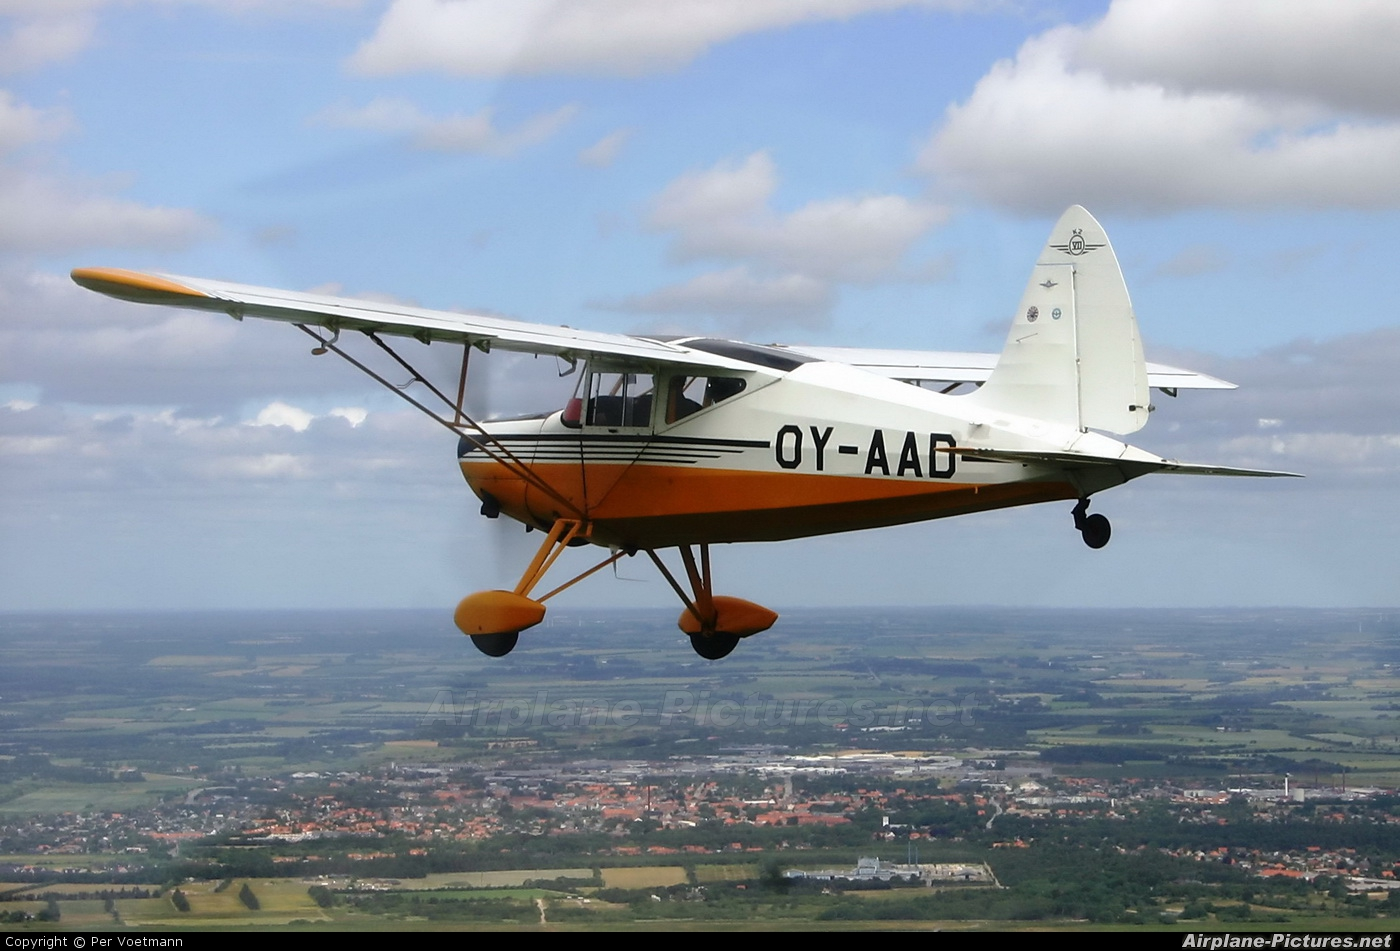 Private OY-AAD aircraft at In Flight - Denmark